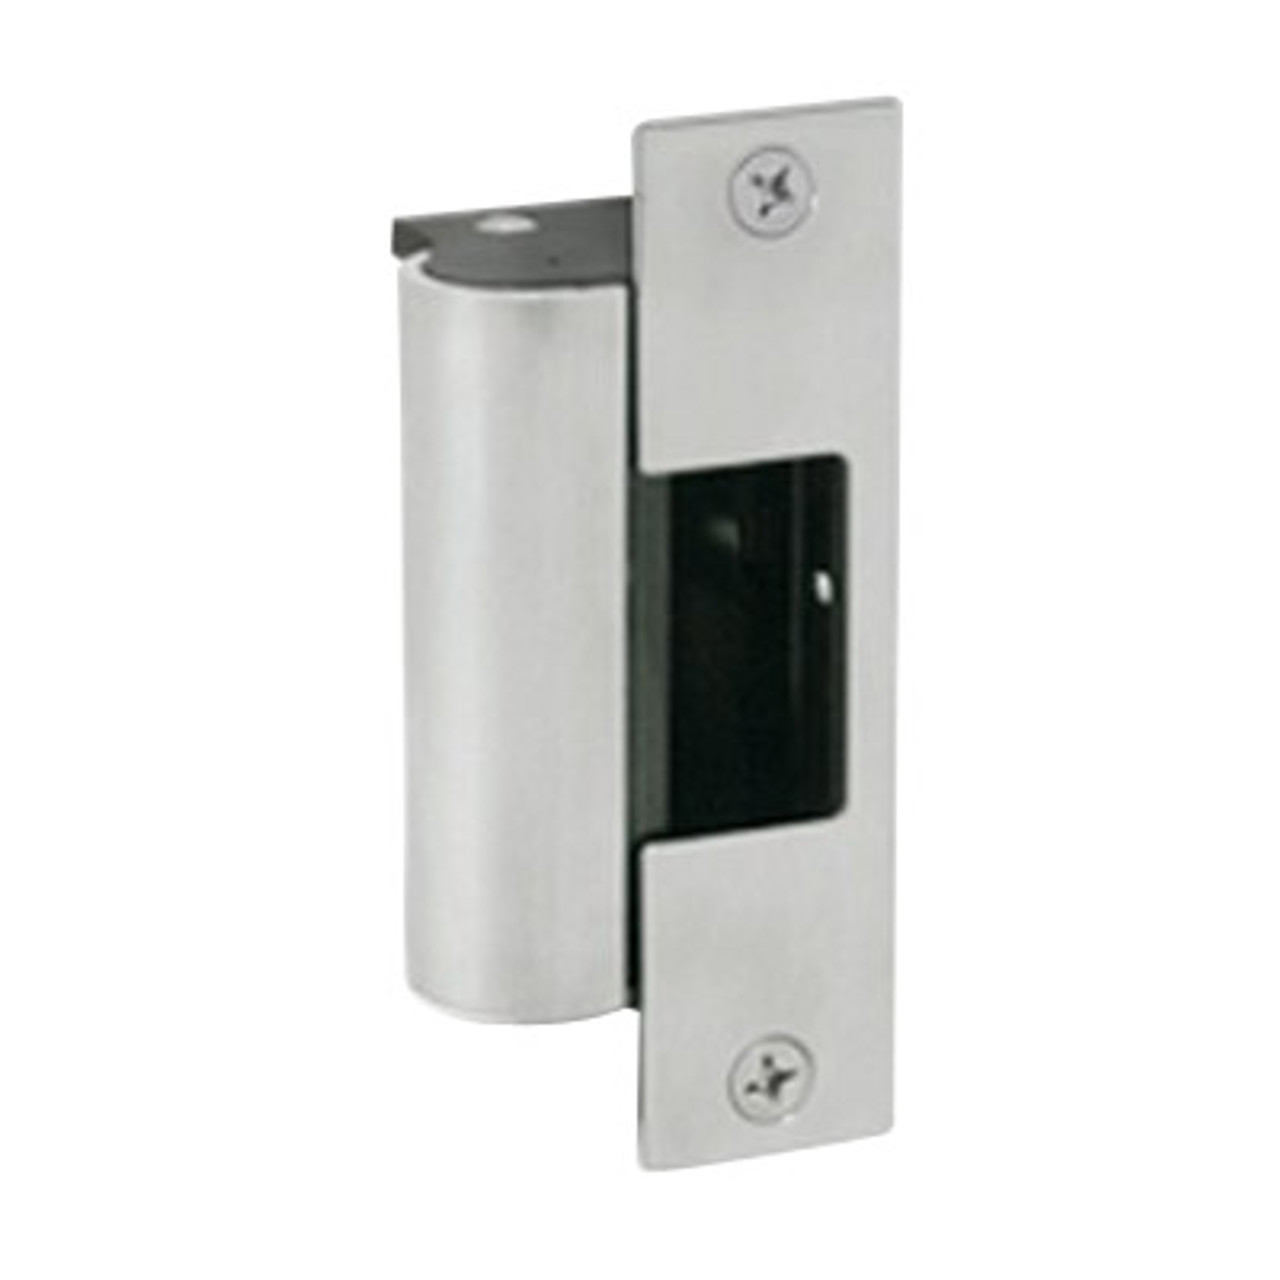 1006-F-630-LBM Hes Fail Safe Electric Strike Body with Latchbolt Monitor in Satin Stainless Finish